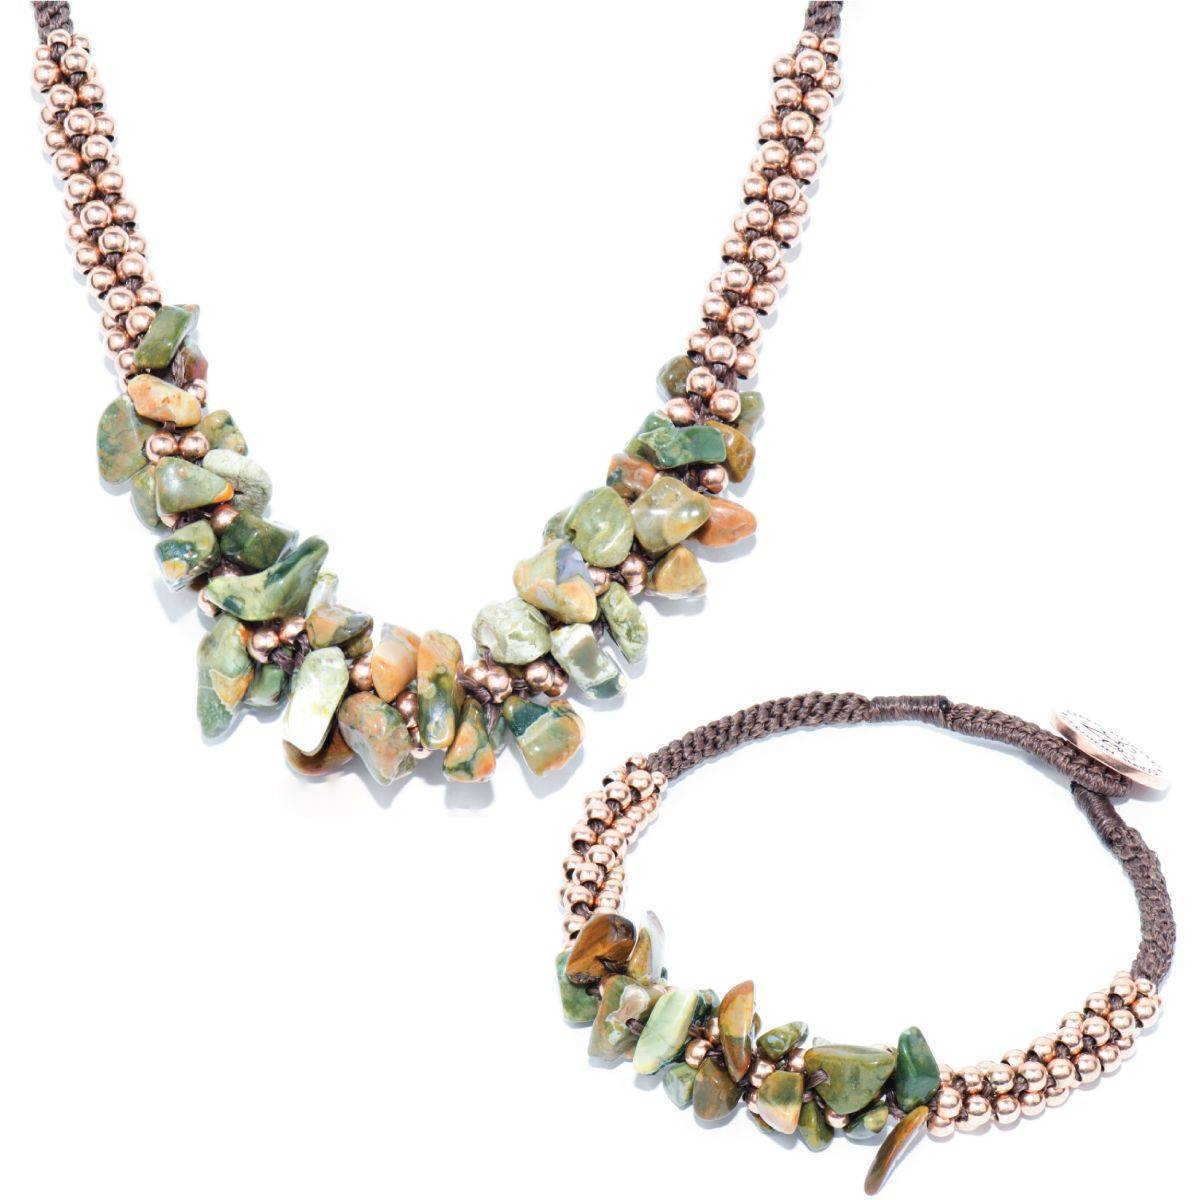 Woodland Agate Terra Bella Gift Set - Bracelet & Necklace